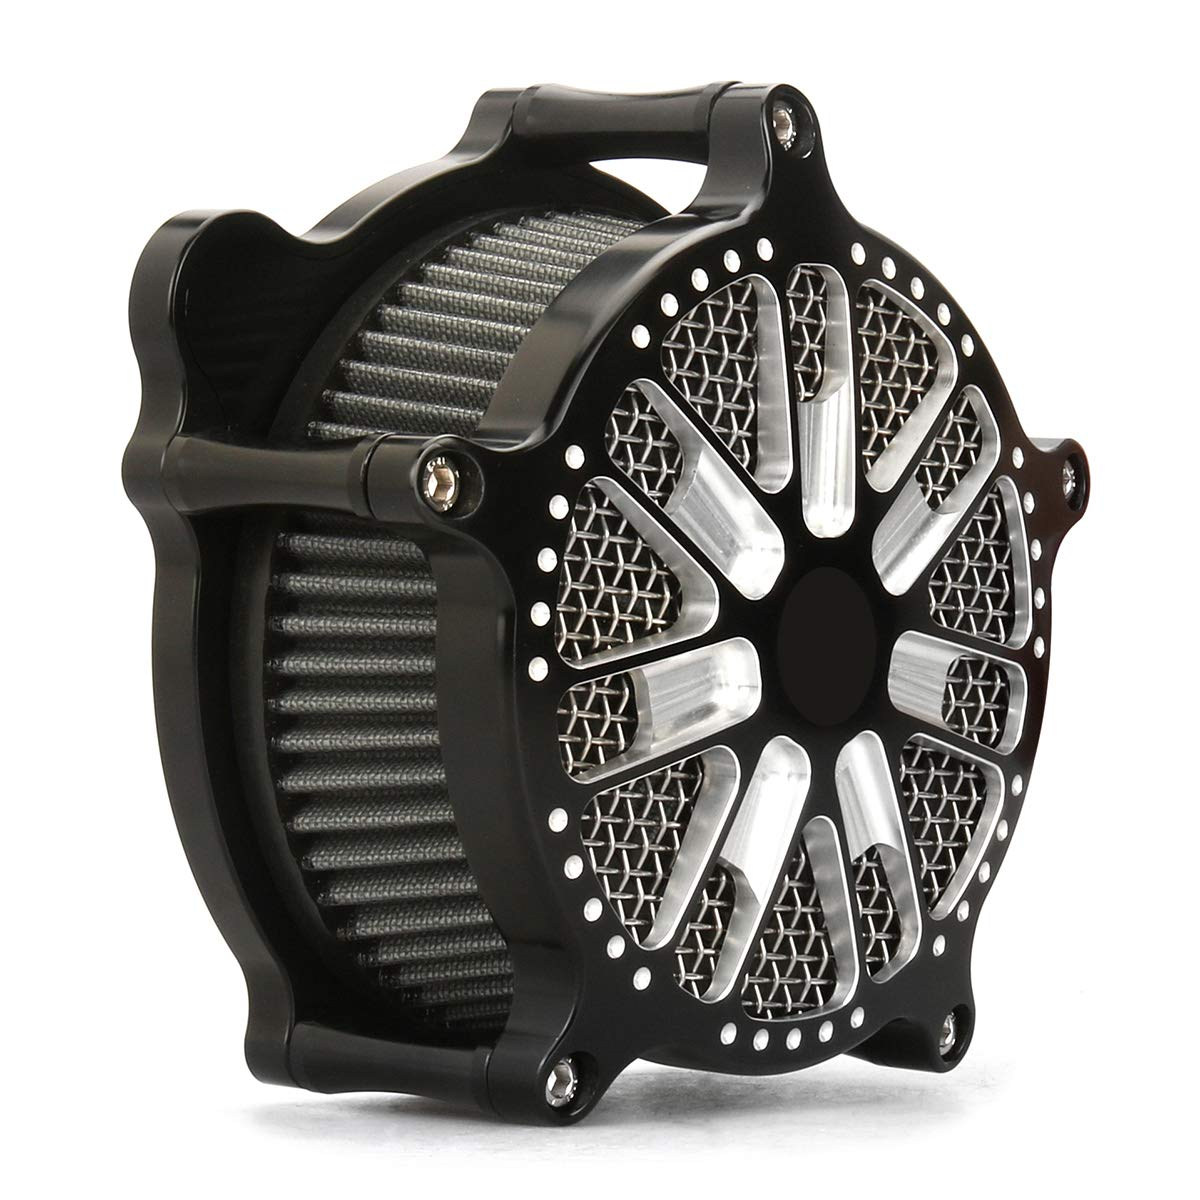 For harley dyna Black AIR CLEANER softail heritage FLST air intakes 93-15,Air cleaner for harley touring 2000-2007   B07MDCPGH9